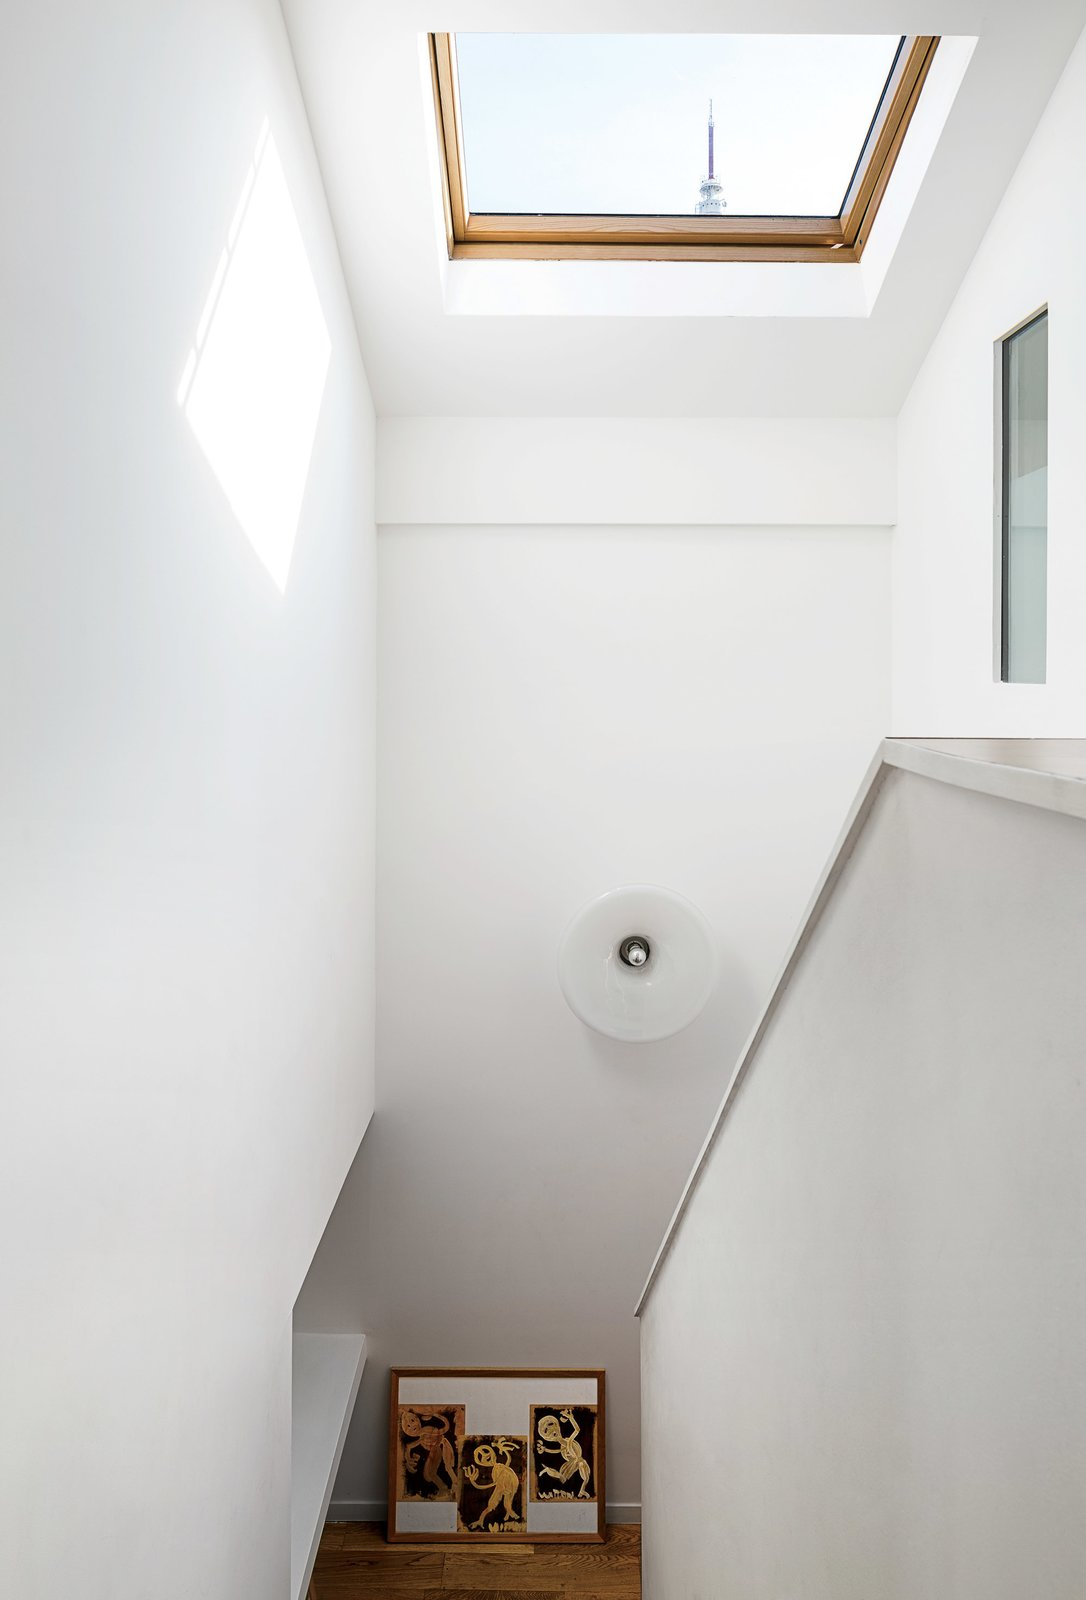 """The antenna of Claude Vasconi's TDF television tower is visible through the Velux skylight architects Caroline Djuric and Mirco Tardio added to a family house in France. """"It's very French, very angular,"""" Djuric says of the renovation. The light fixture was found at a brocante, or vintage market."""